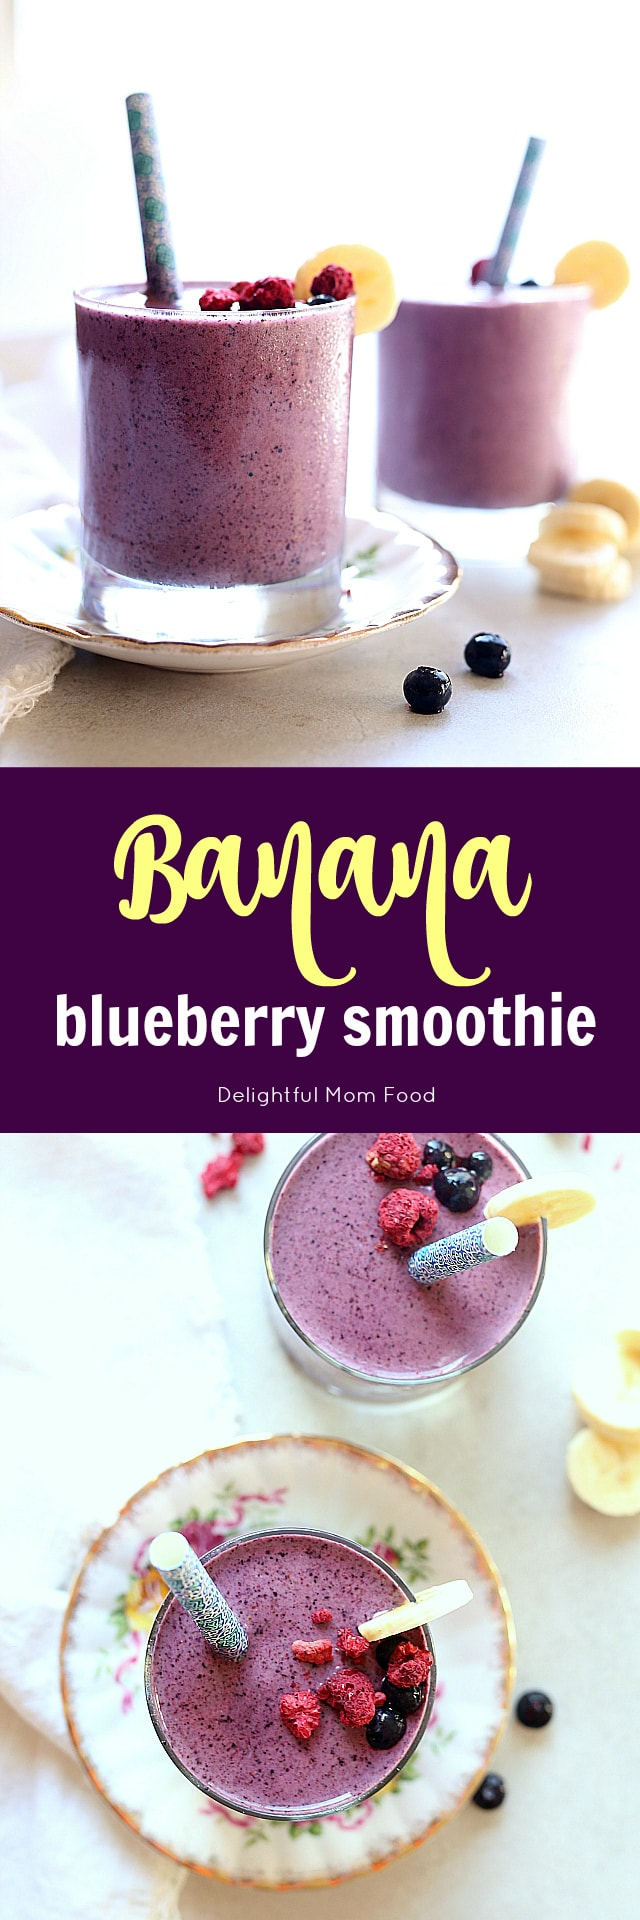 Blueberry Banana Smoothie Dairy Free Delightful Mom Food